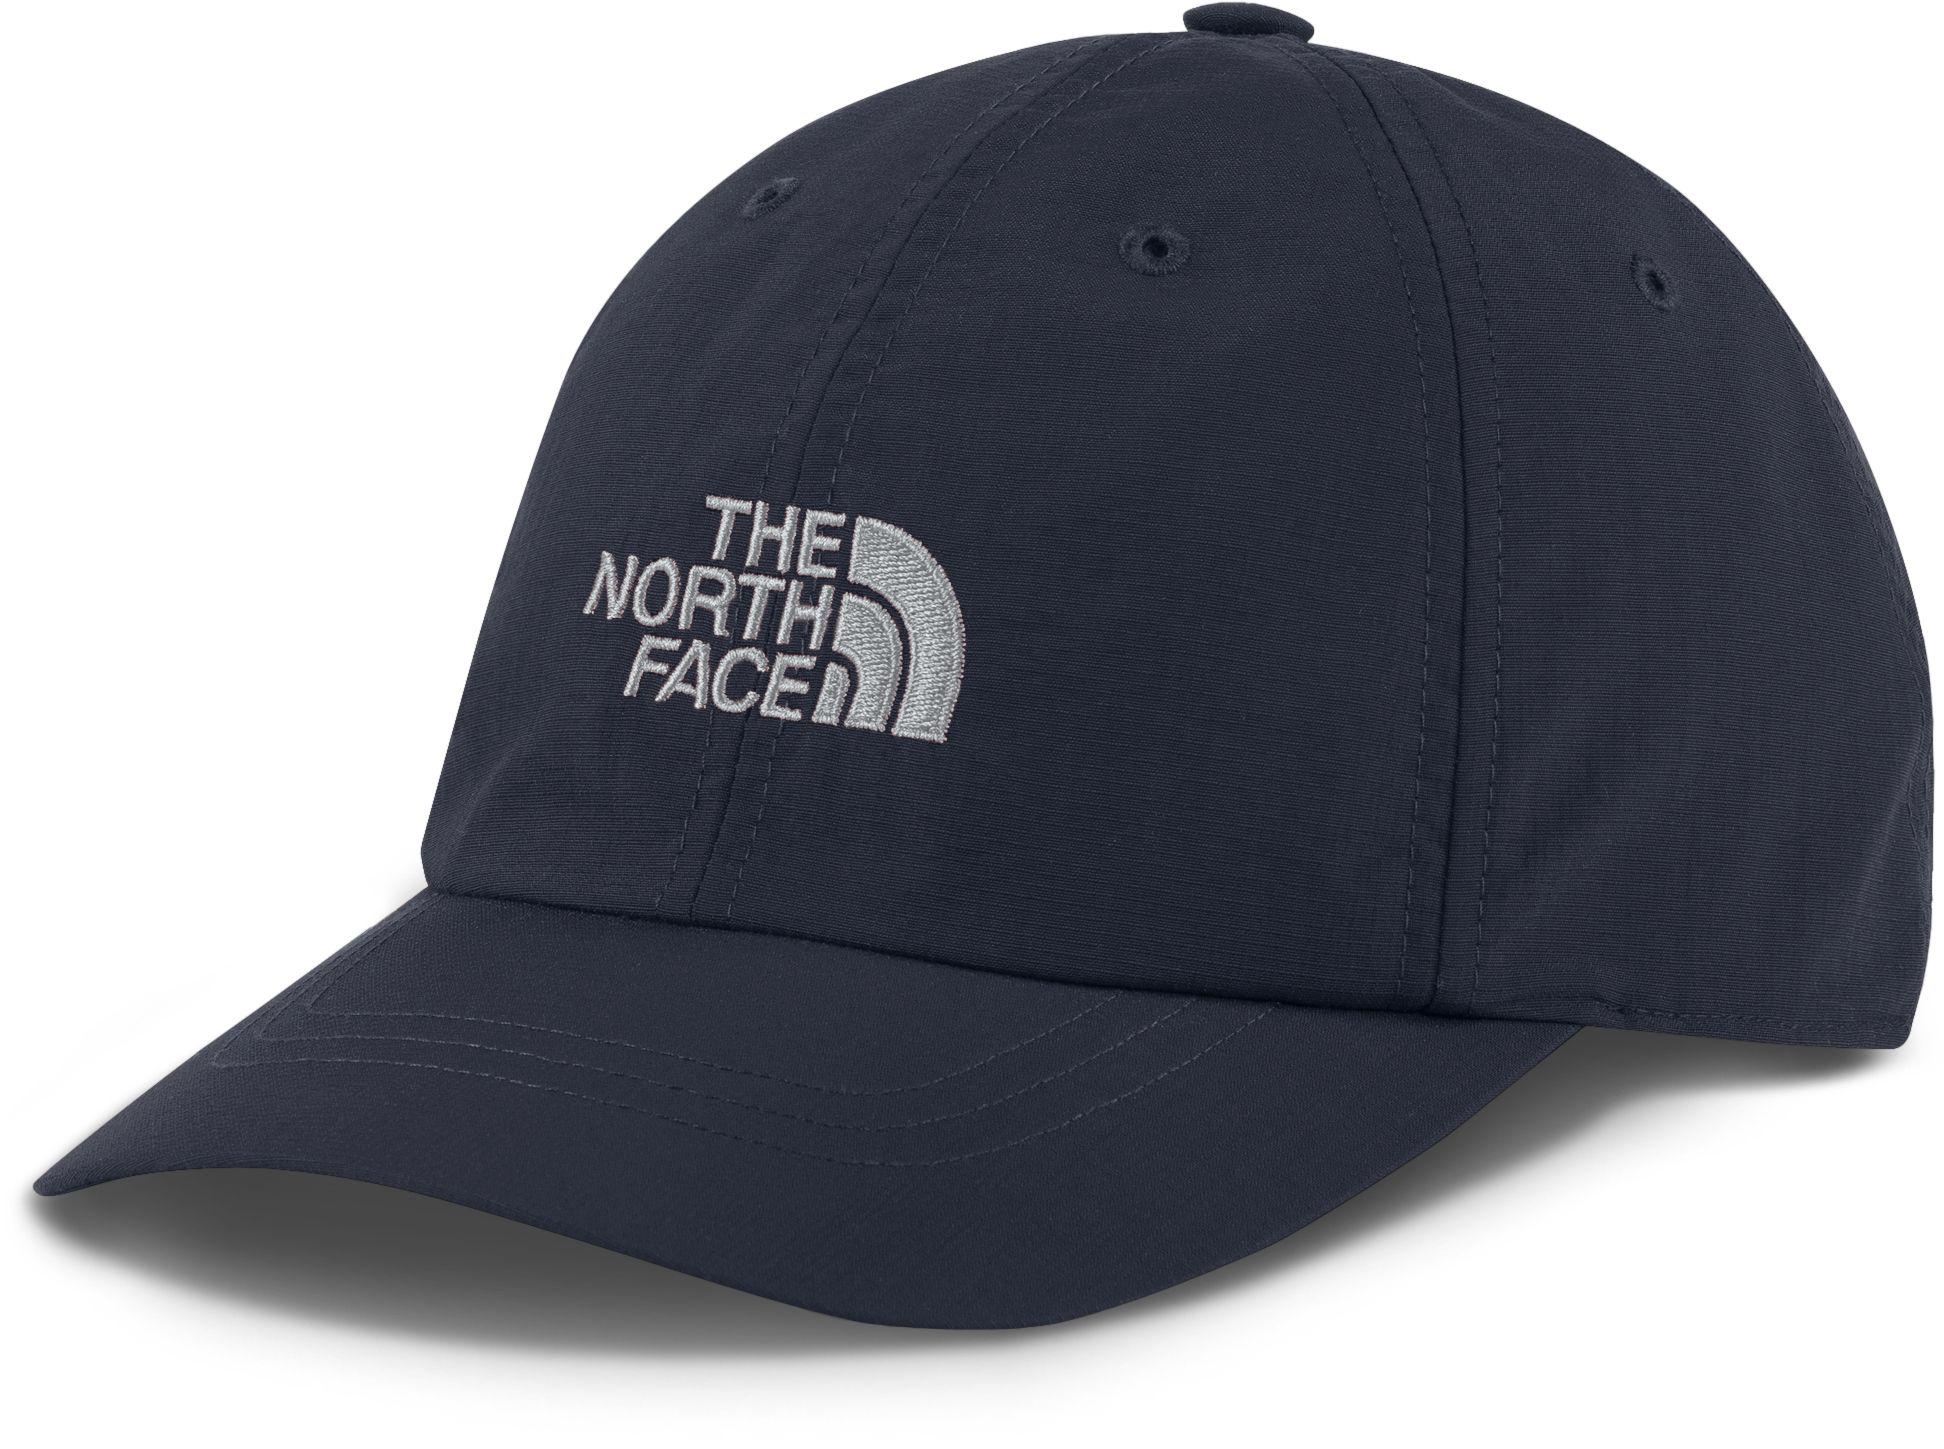 Lyst - The North Face Horizon Ball Cap in Blue for Men 4f4b116ffbeb